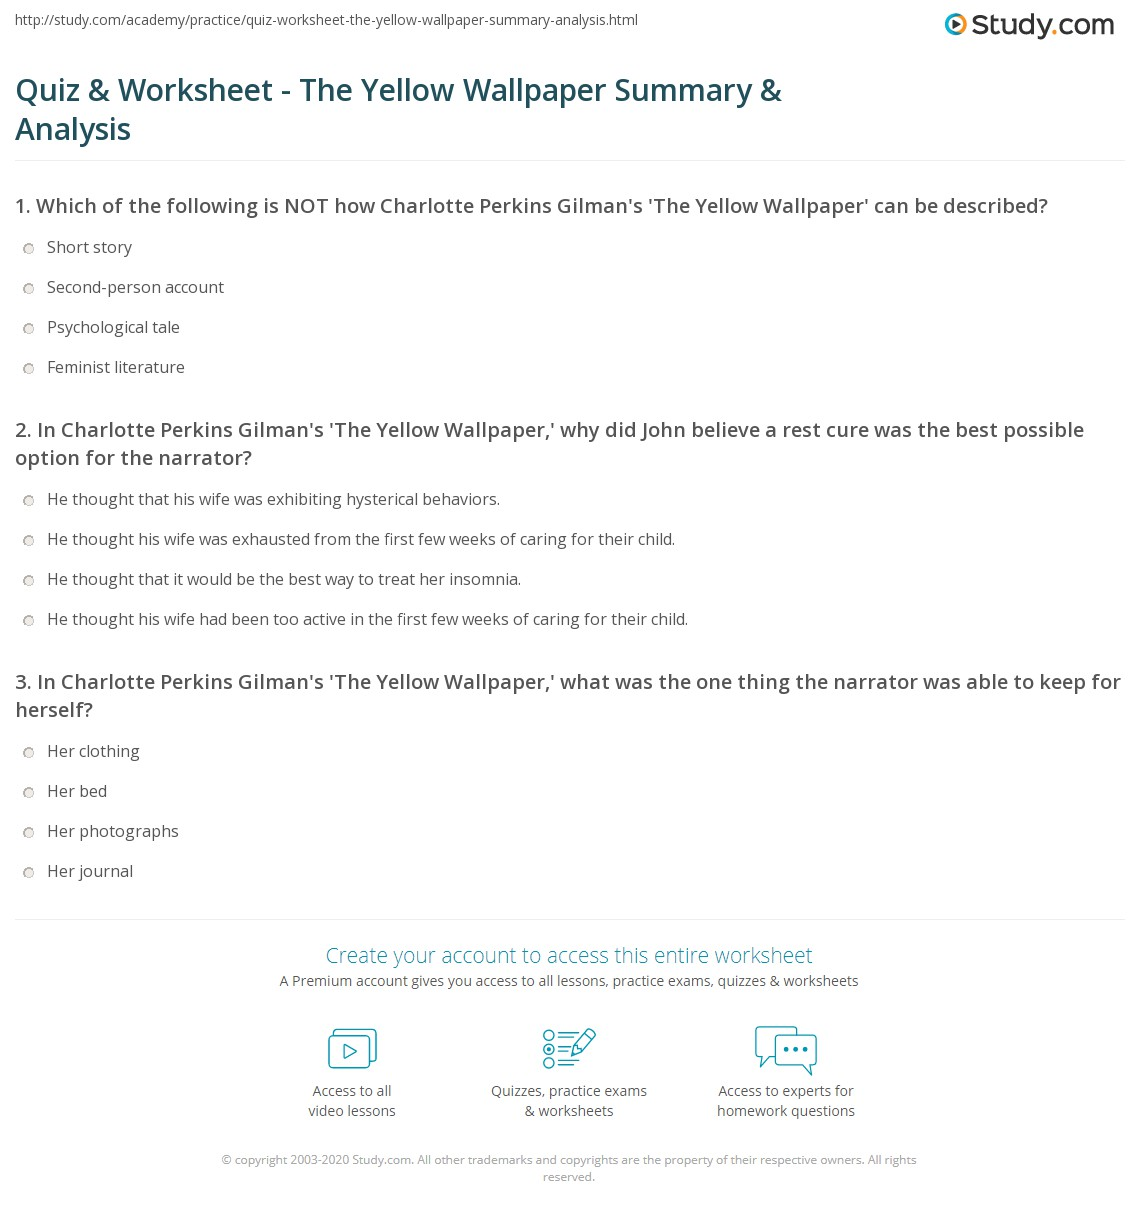 print charlotte perkins gilmans the yellow wallpaper summary analysis worksheet